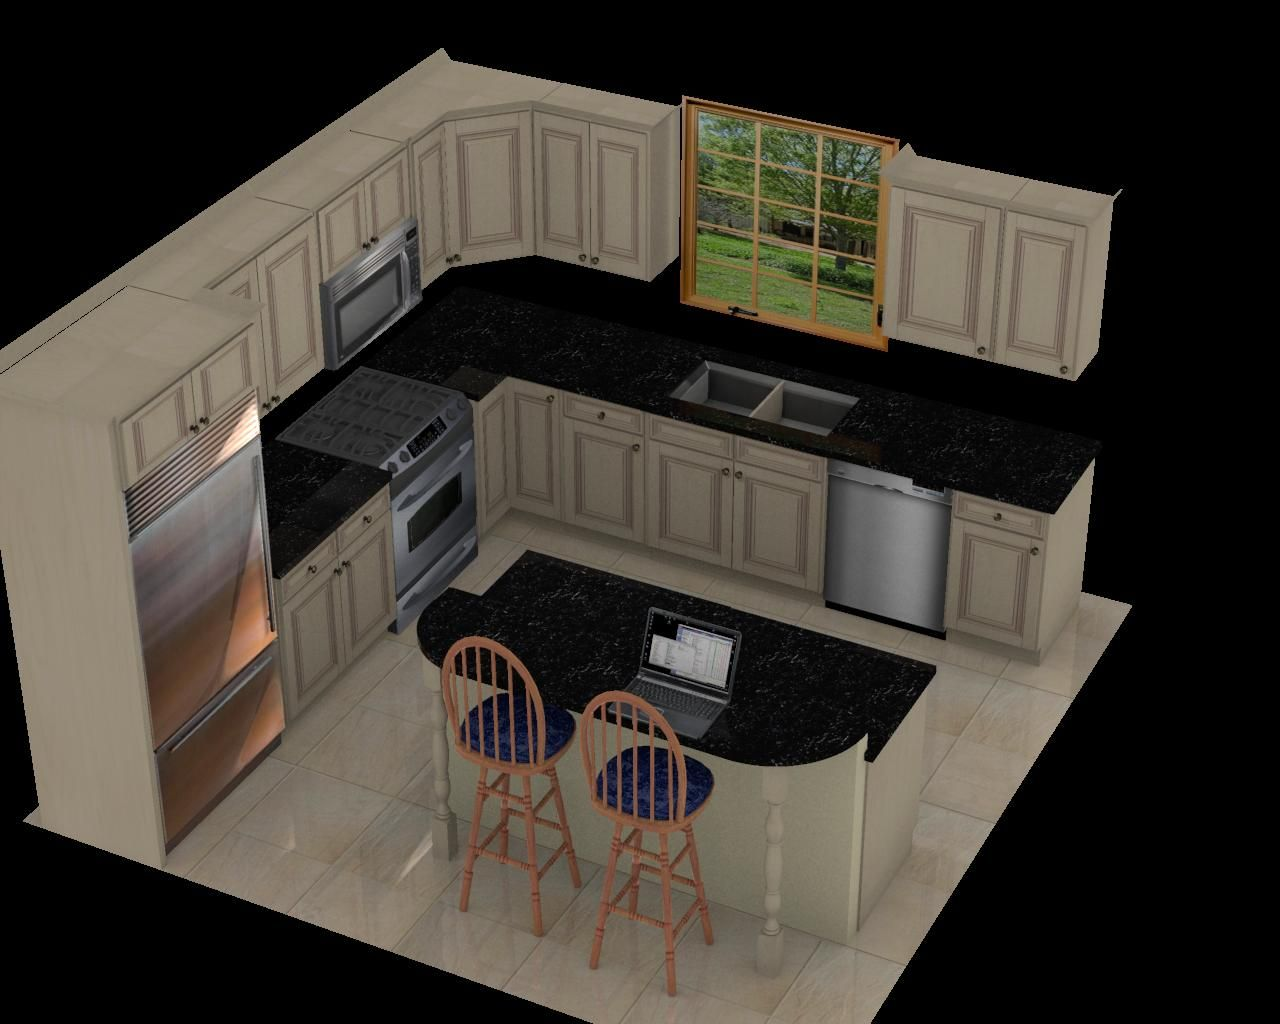 Luxury 12x12 kitchen layout with island 51 for with 12x12 for Kitchen design 9